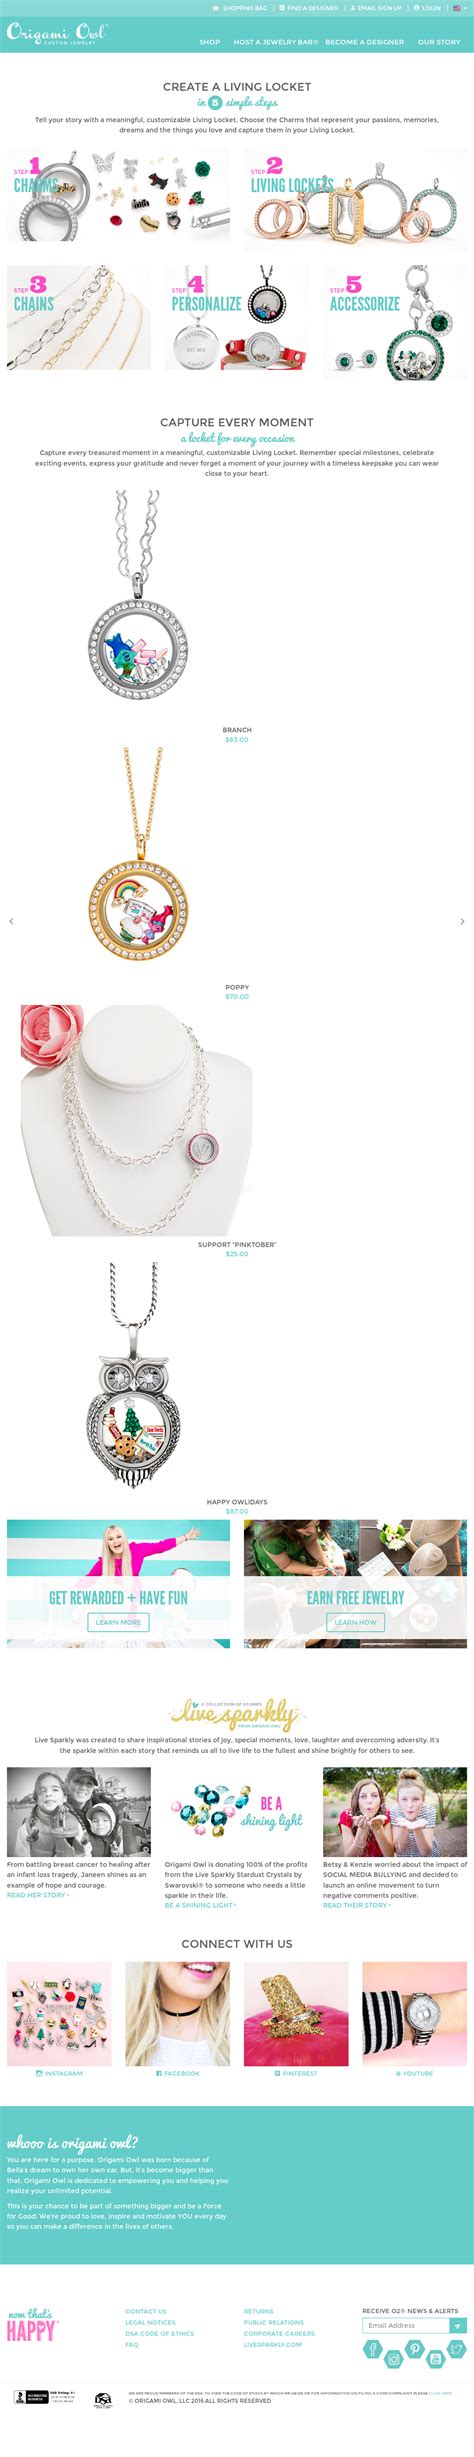 Origami Owl History - origami owl history gallery craft decoration ideas